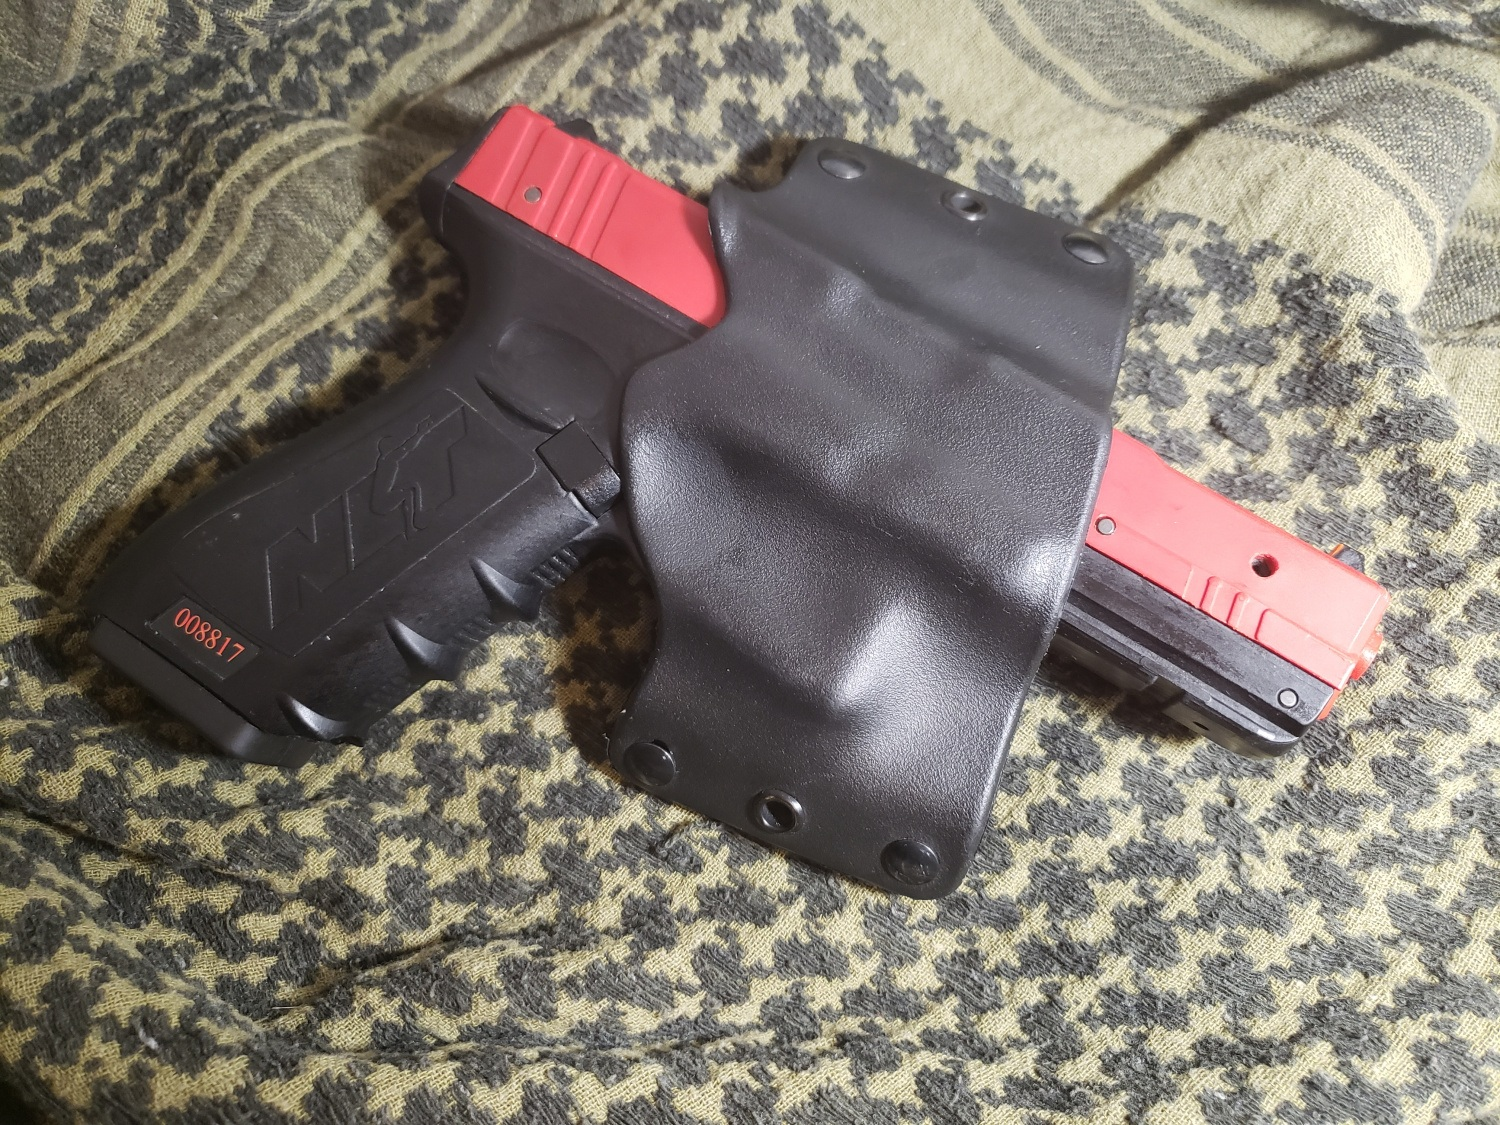 OWB COMPACT HOLSTER by Phalanx Defense Systems, right side